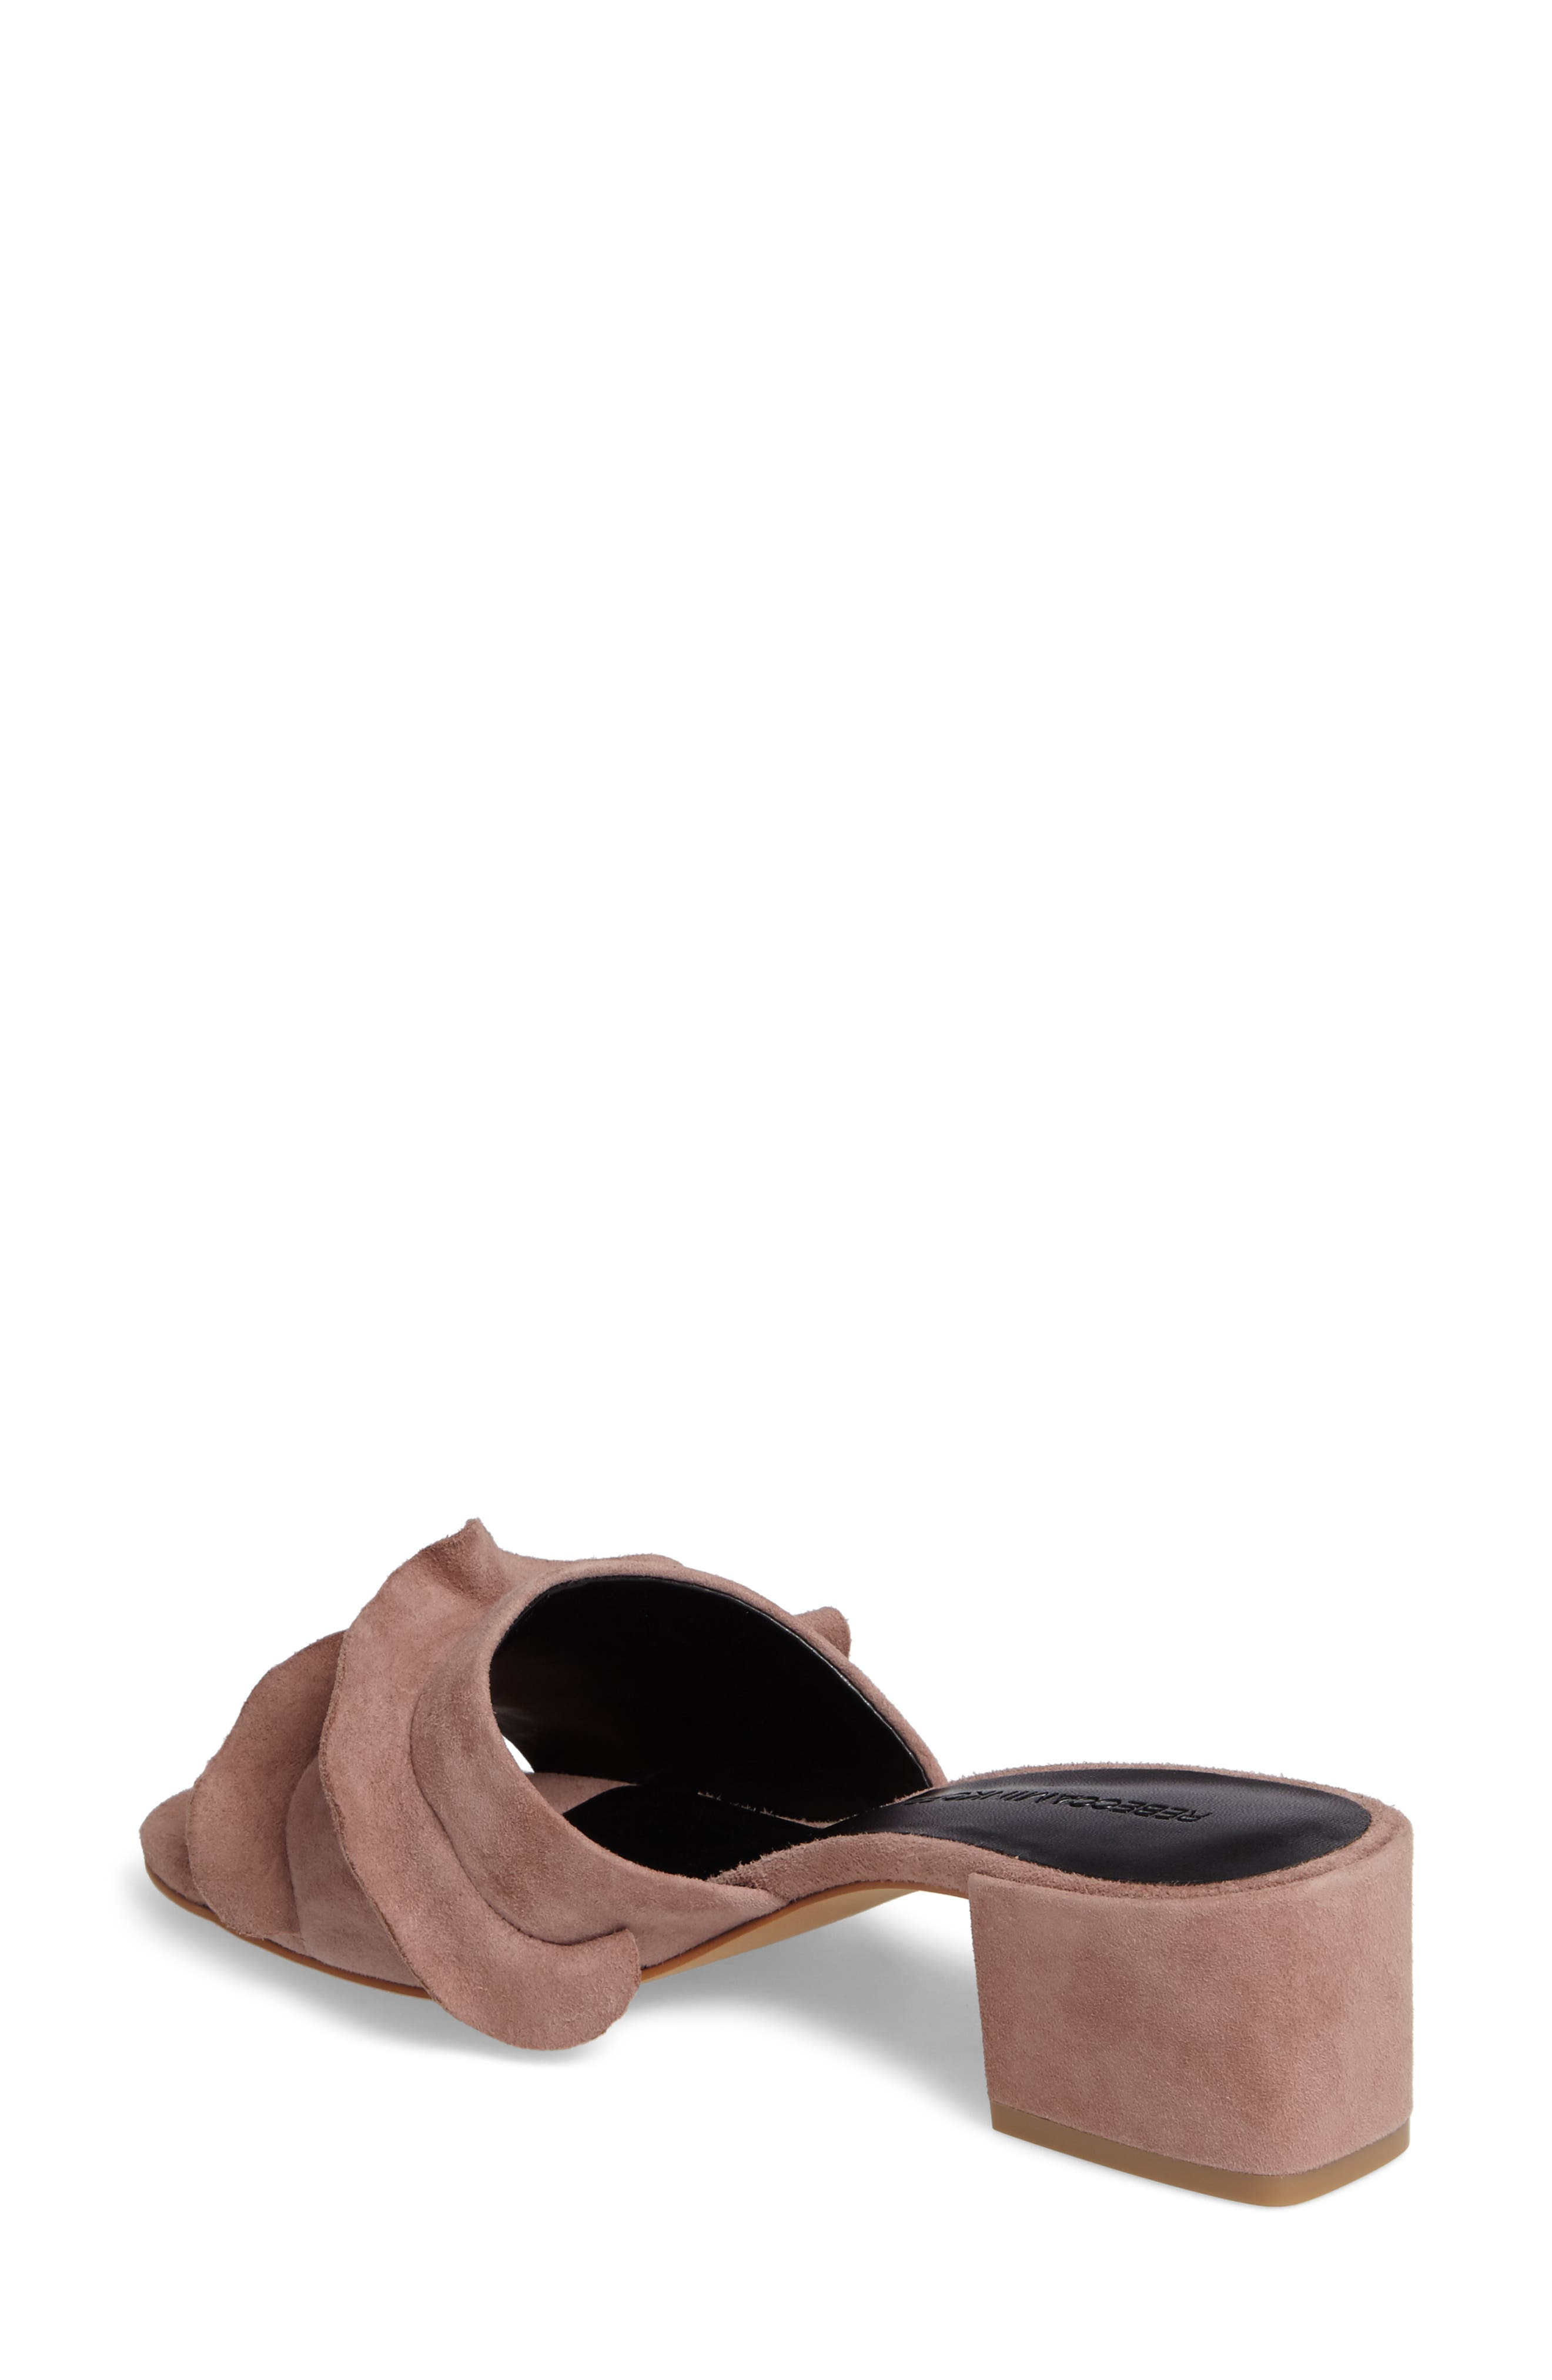 Isabelle Ruffle Mule Sandal,                             Alternate thumbnail 2, color,                             Berry Smoothie Suede